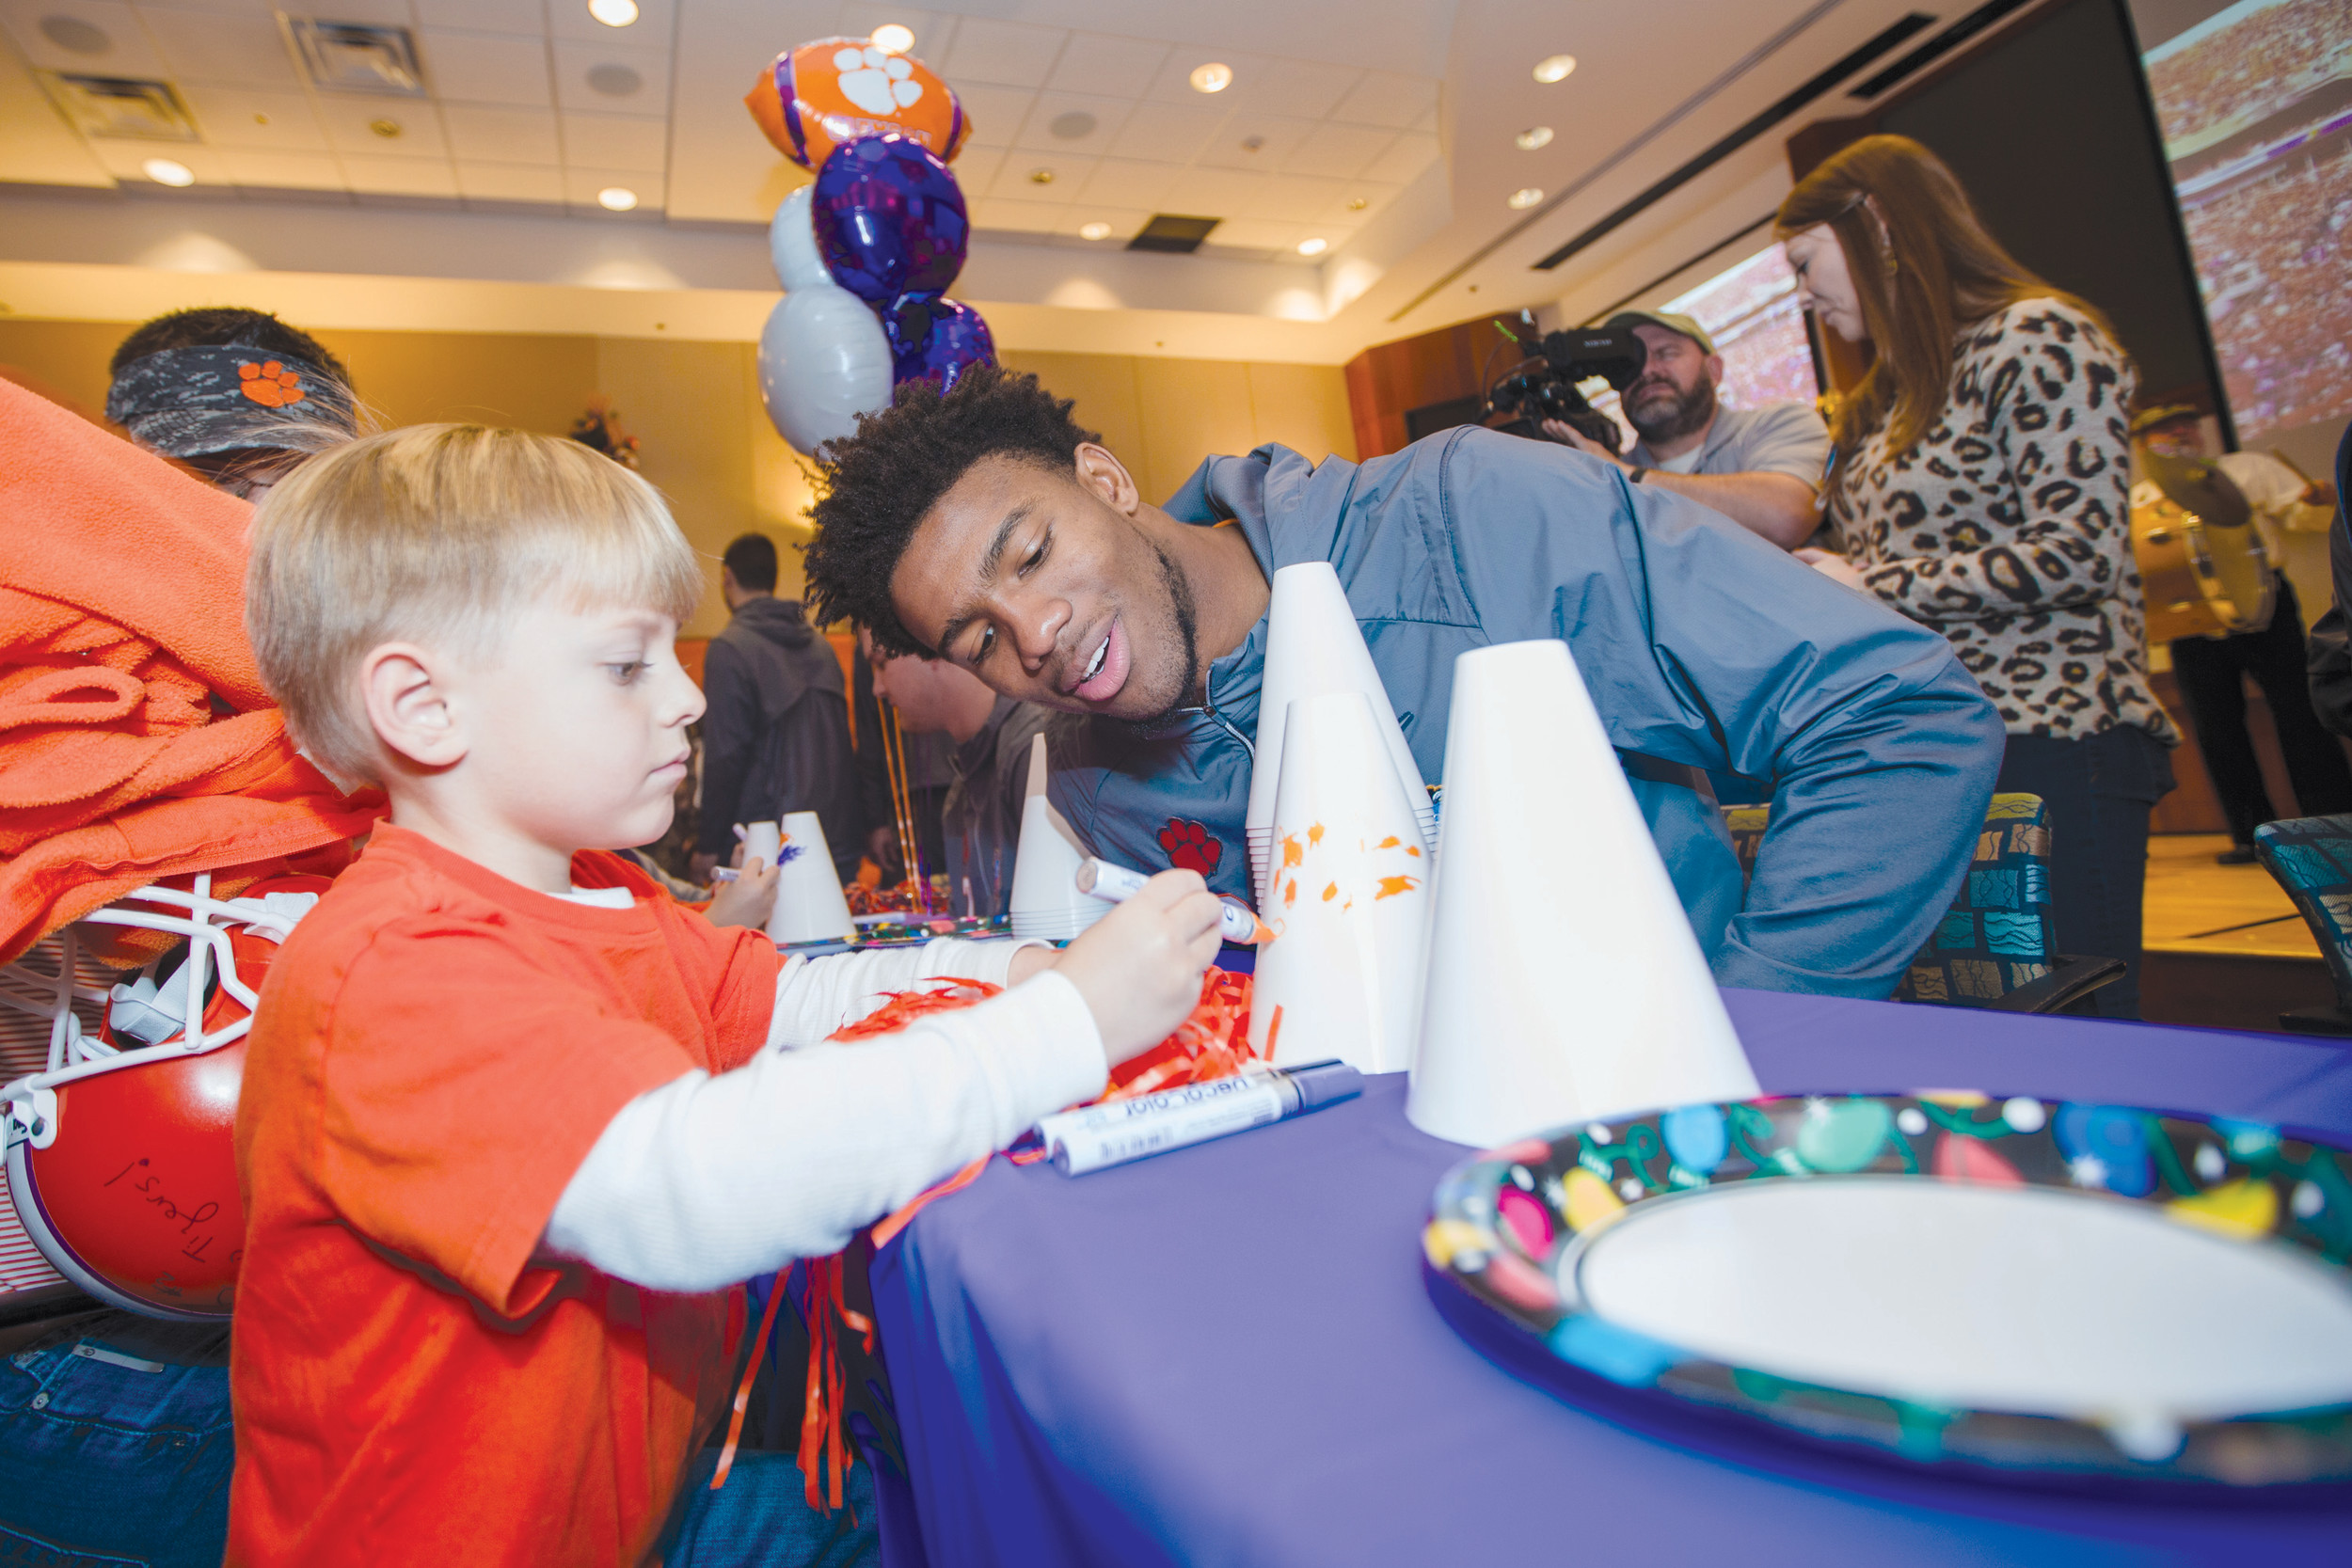 Clemson quarterback Kelly Bryant helps a a patient of Ochsner Baptist Children's Hospital decorate a megaphone at a party thrown on Saturday for the patients and their families in New Orleans.